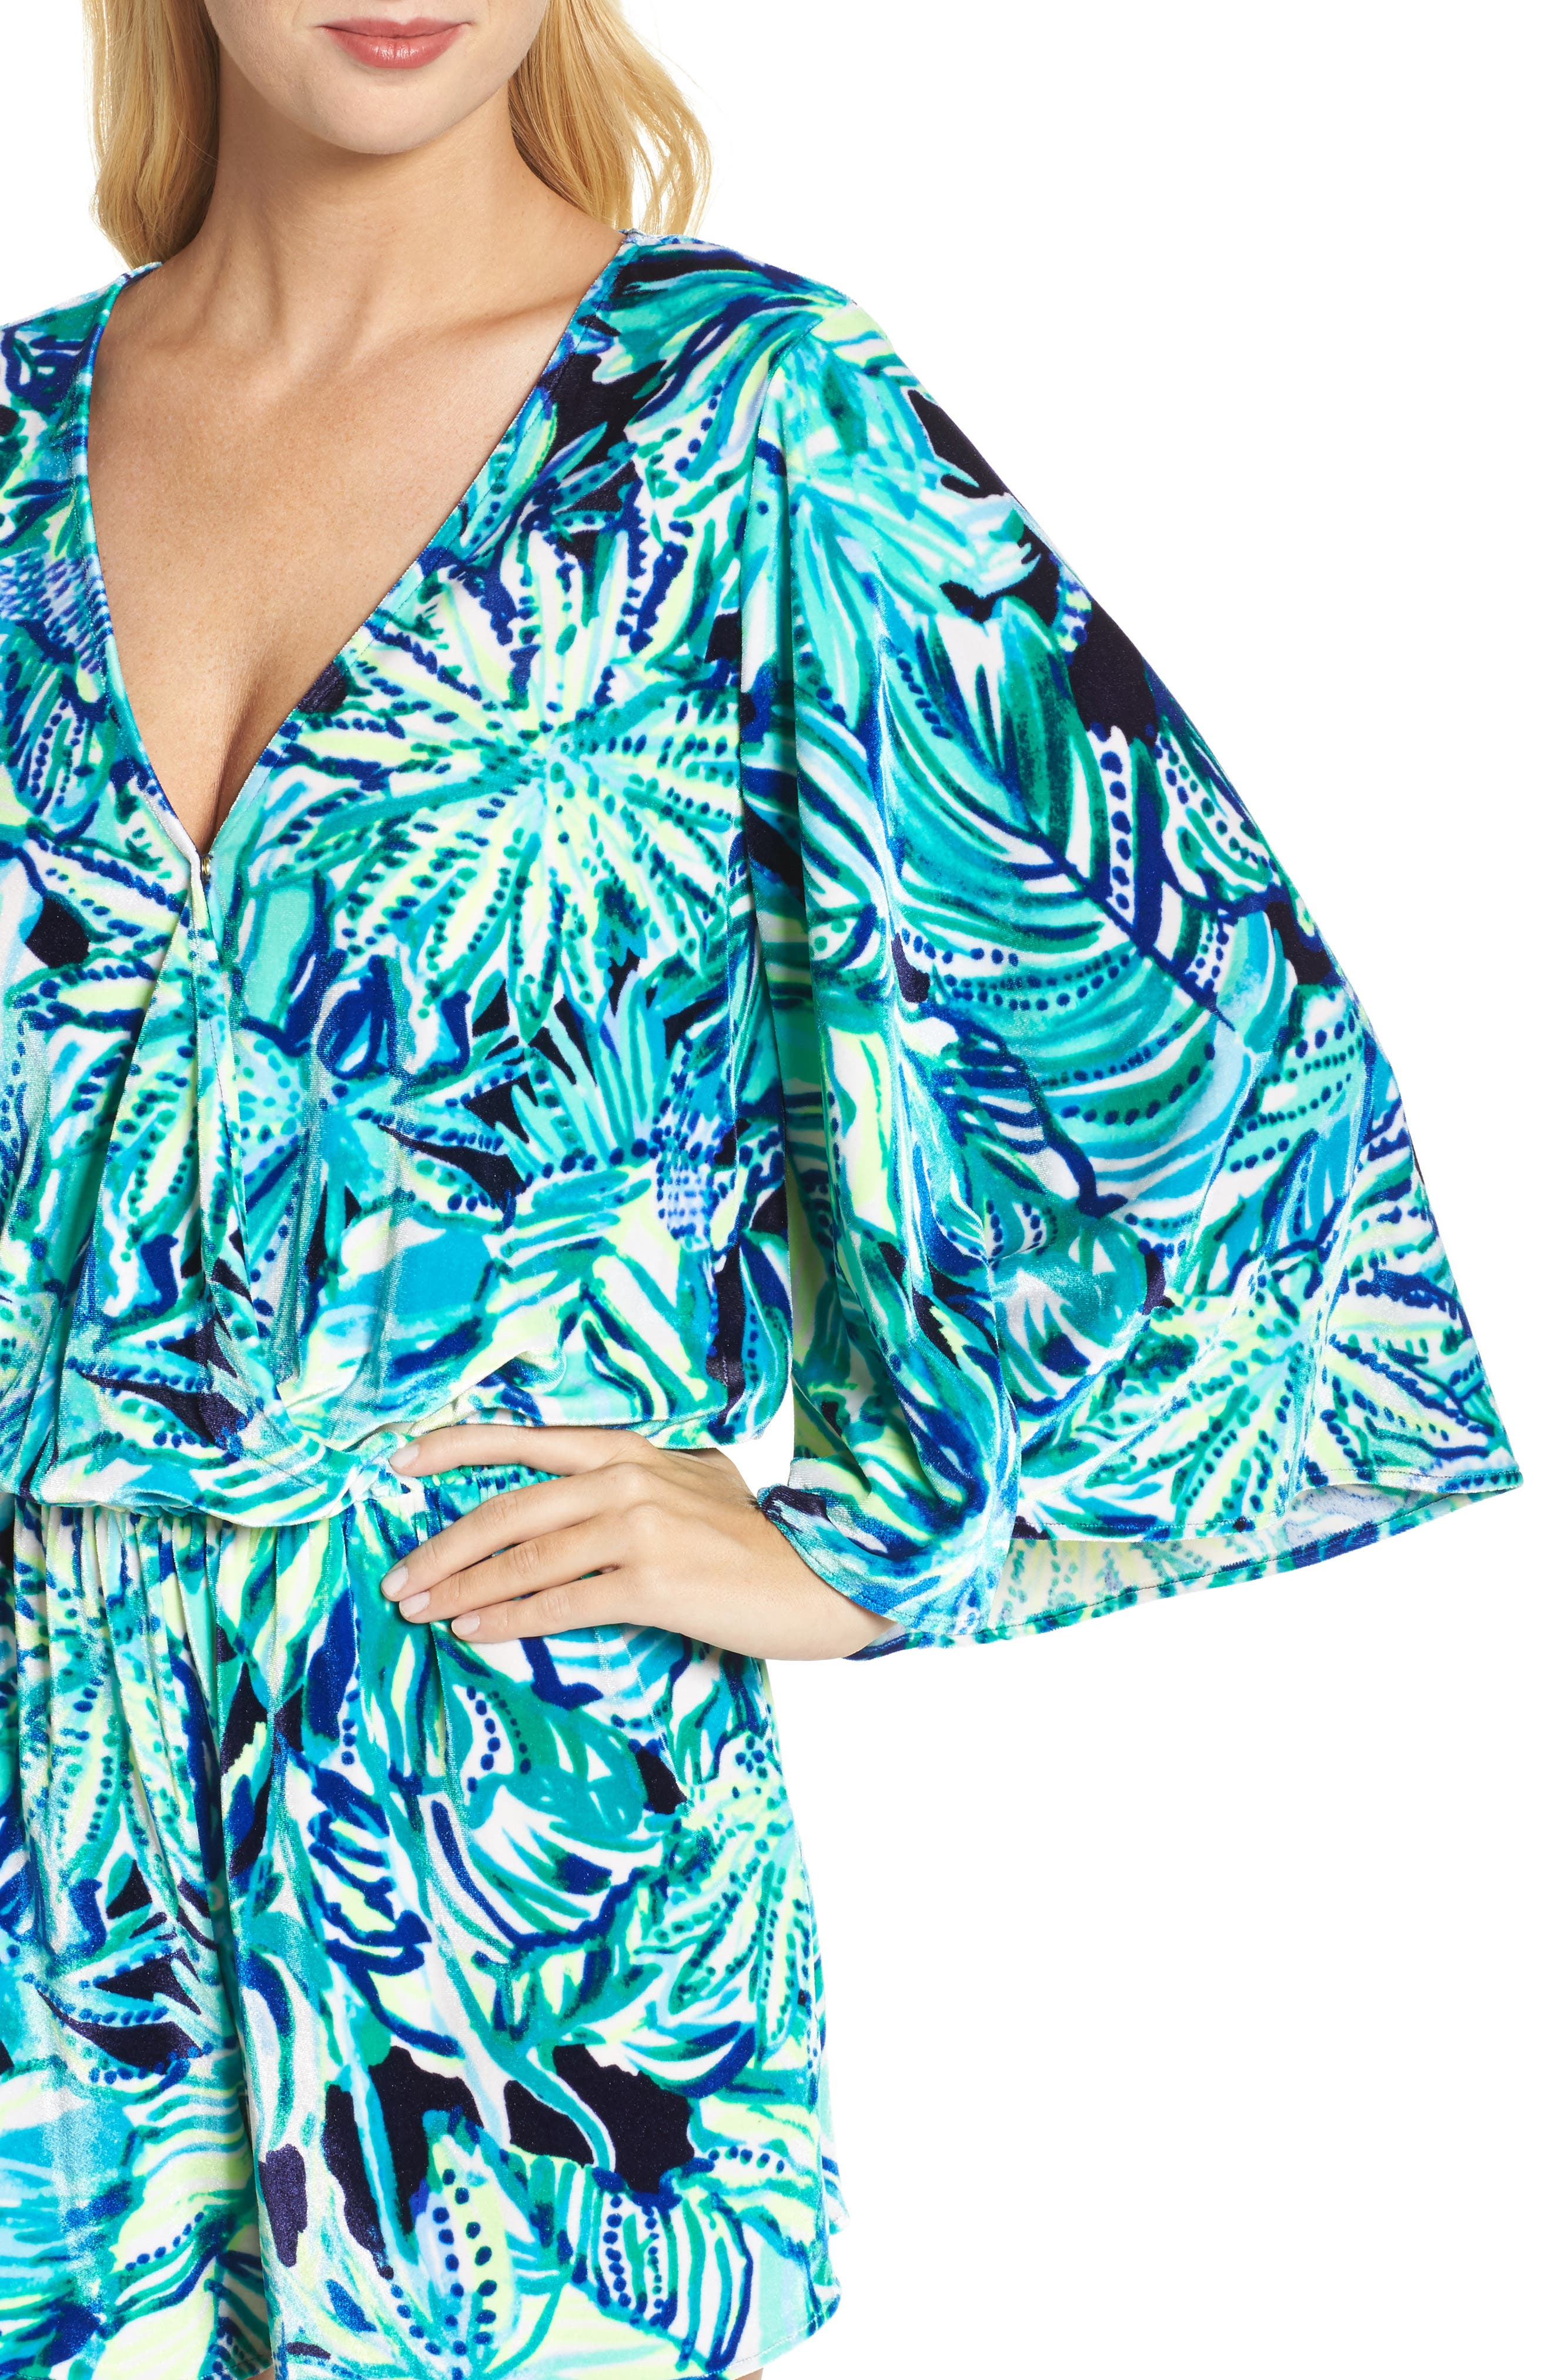 Lily Pulitzer<sup>®</sup> Viviana Romper,                             Alternate thumbnail 4, color,                             Bright Navy Dally